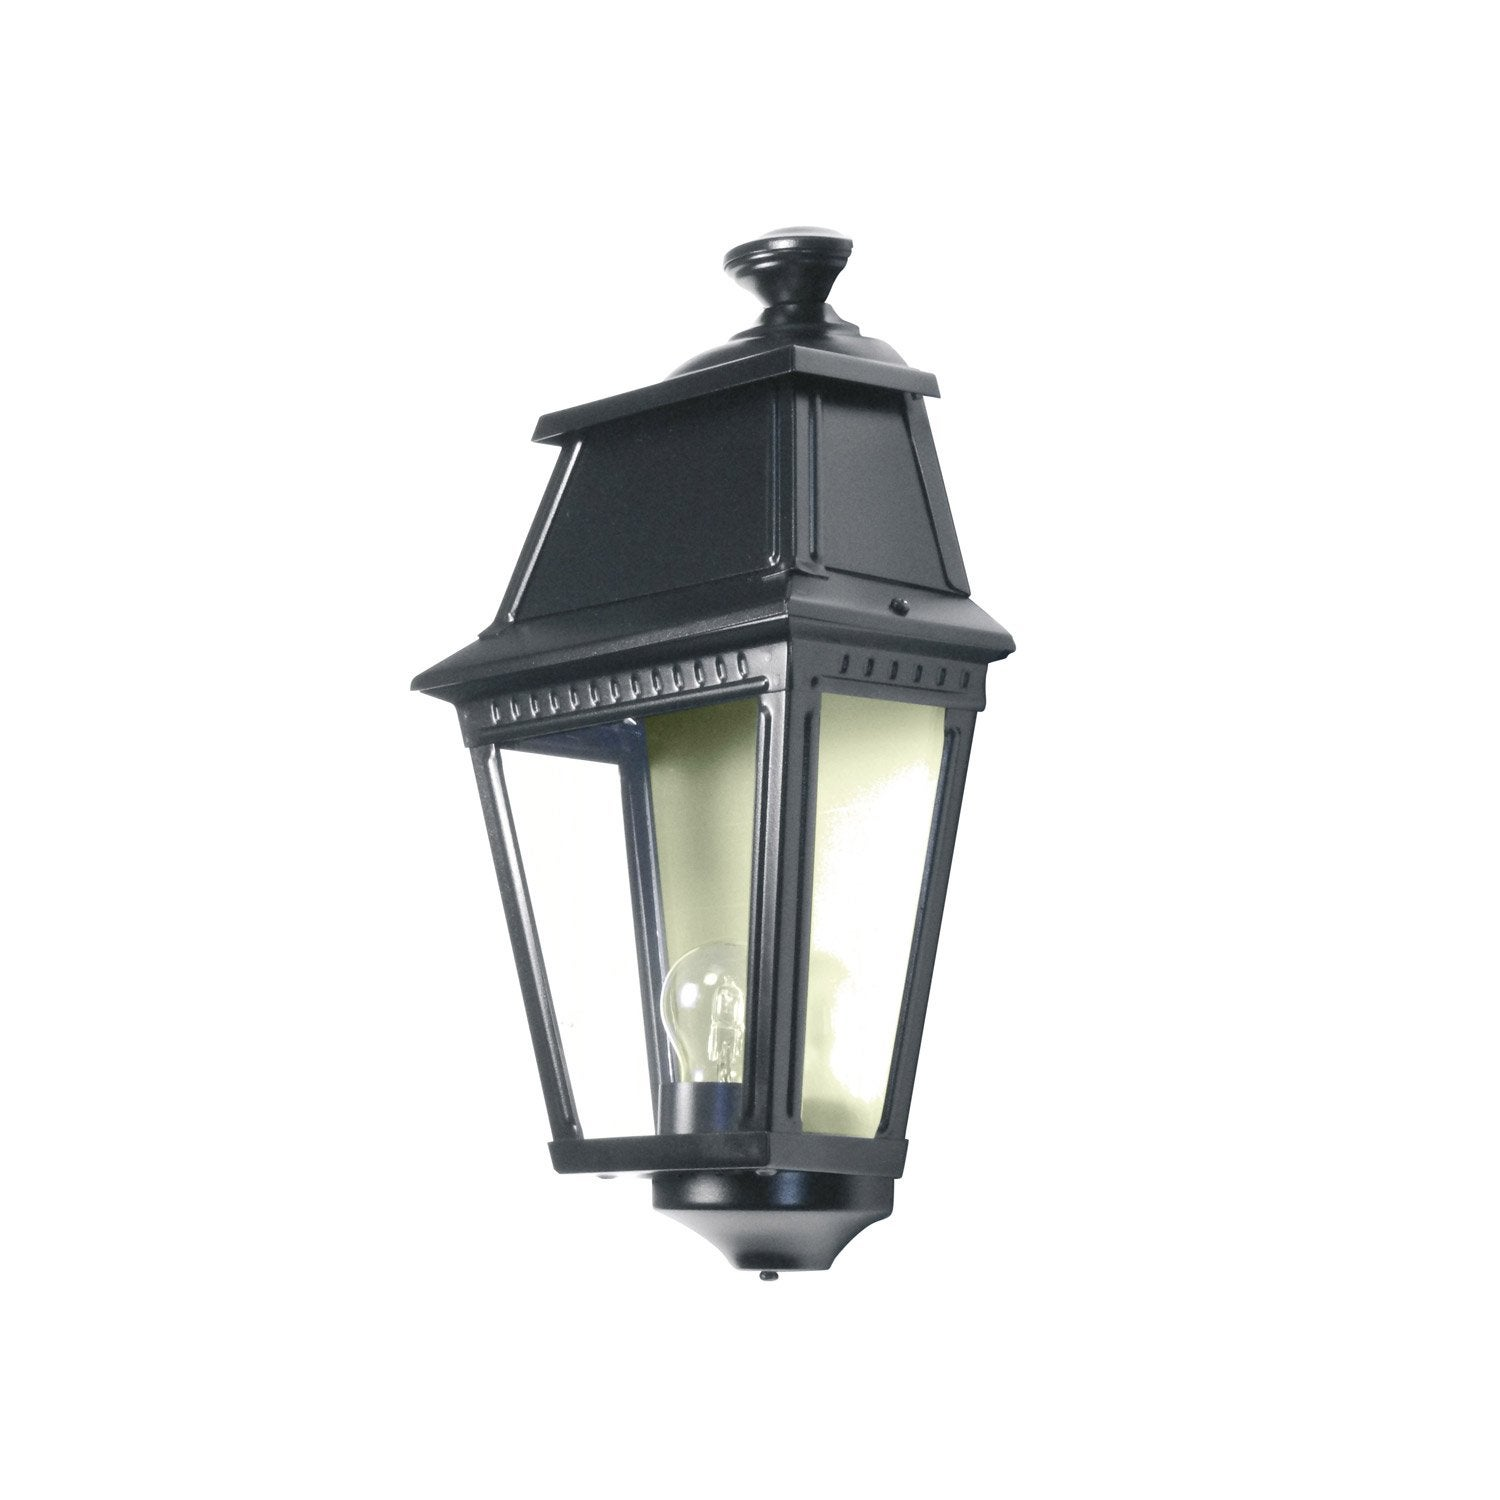 Applique ext rieure avenue 2 e27 noir roger pradier leroy merlin - Applique leroy merlin ...